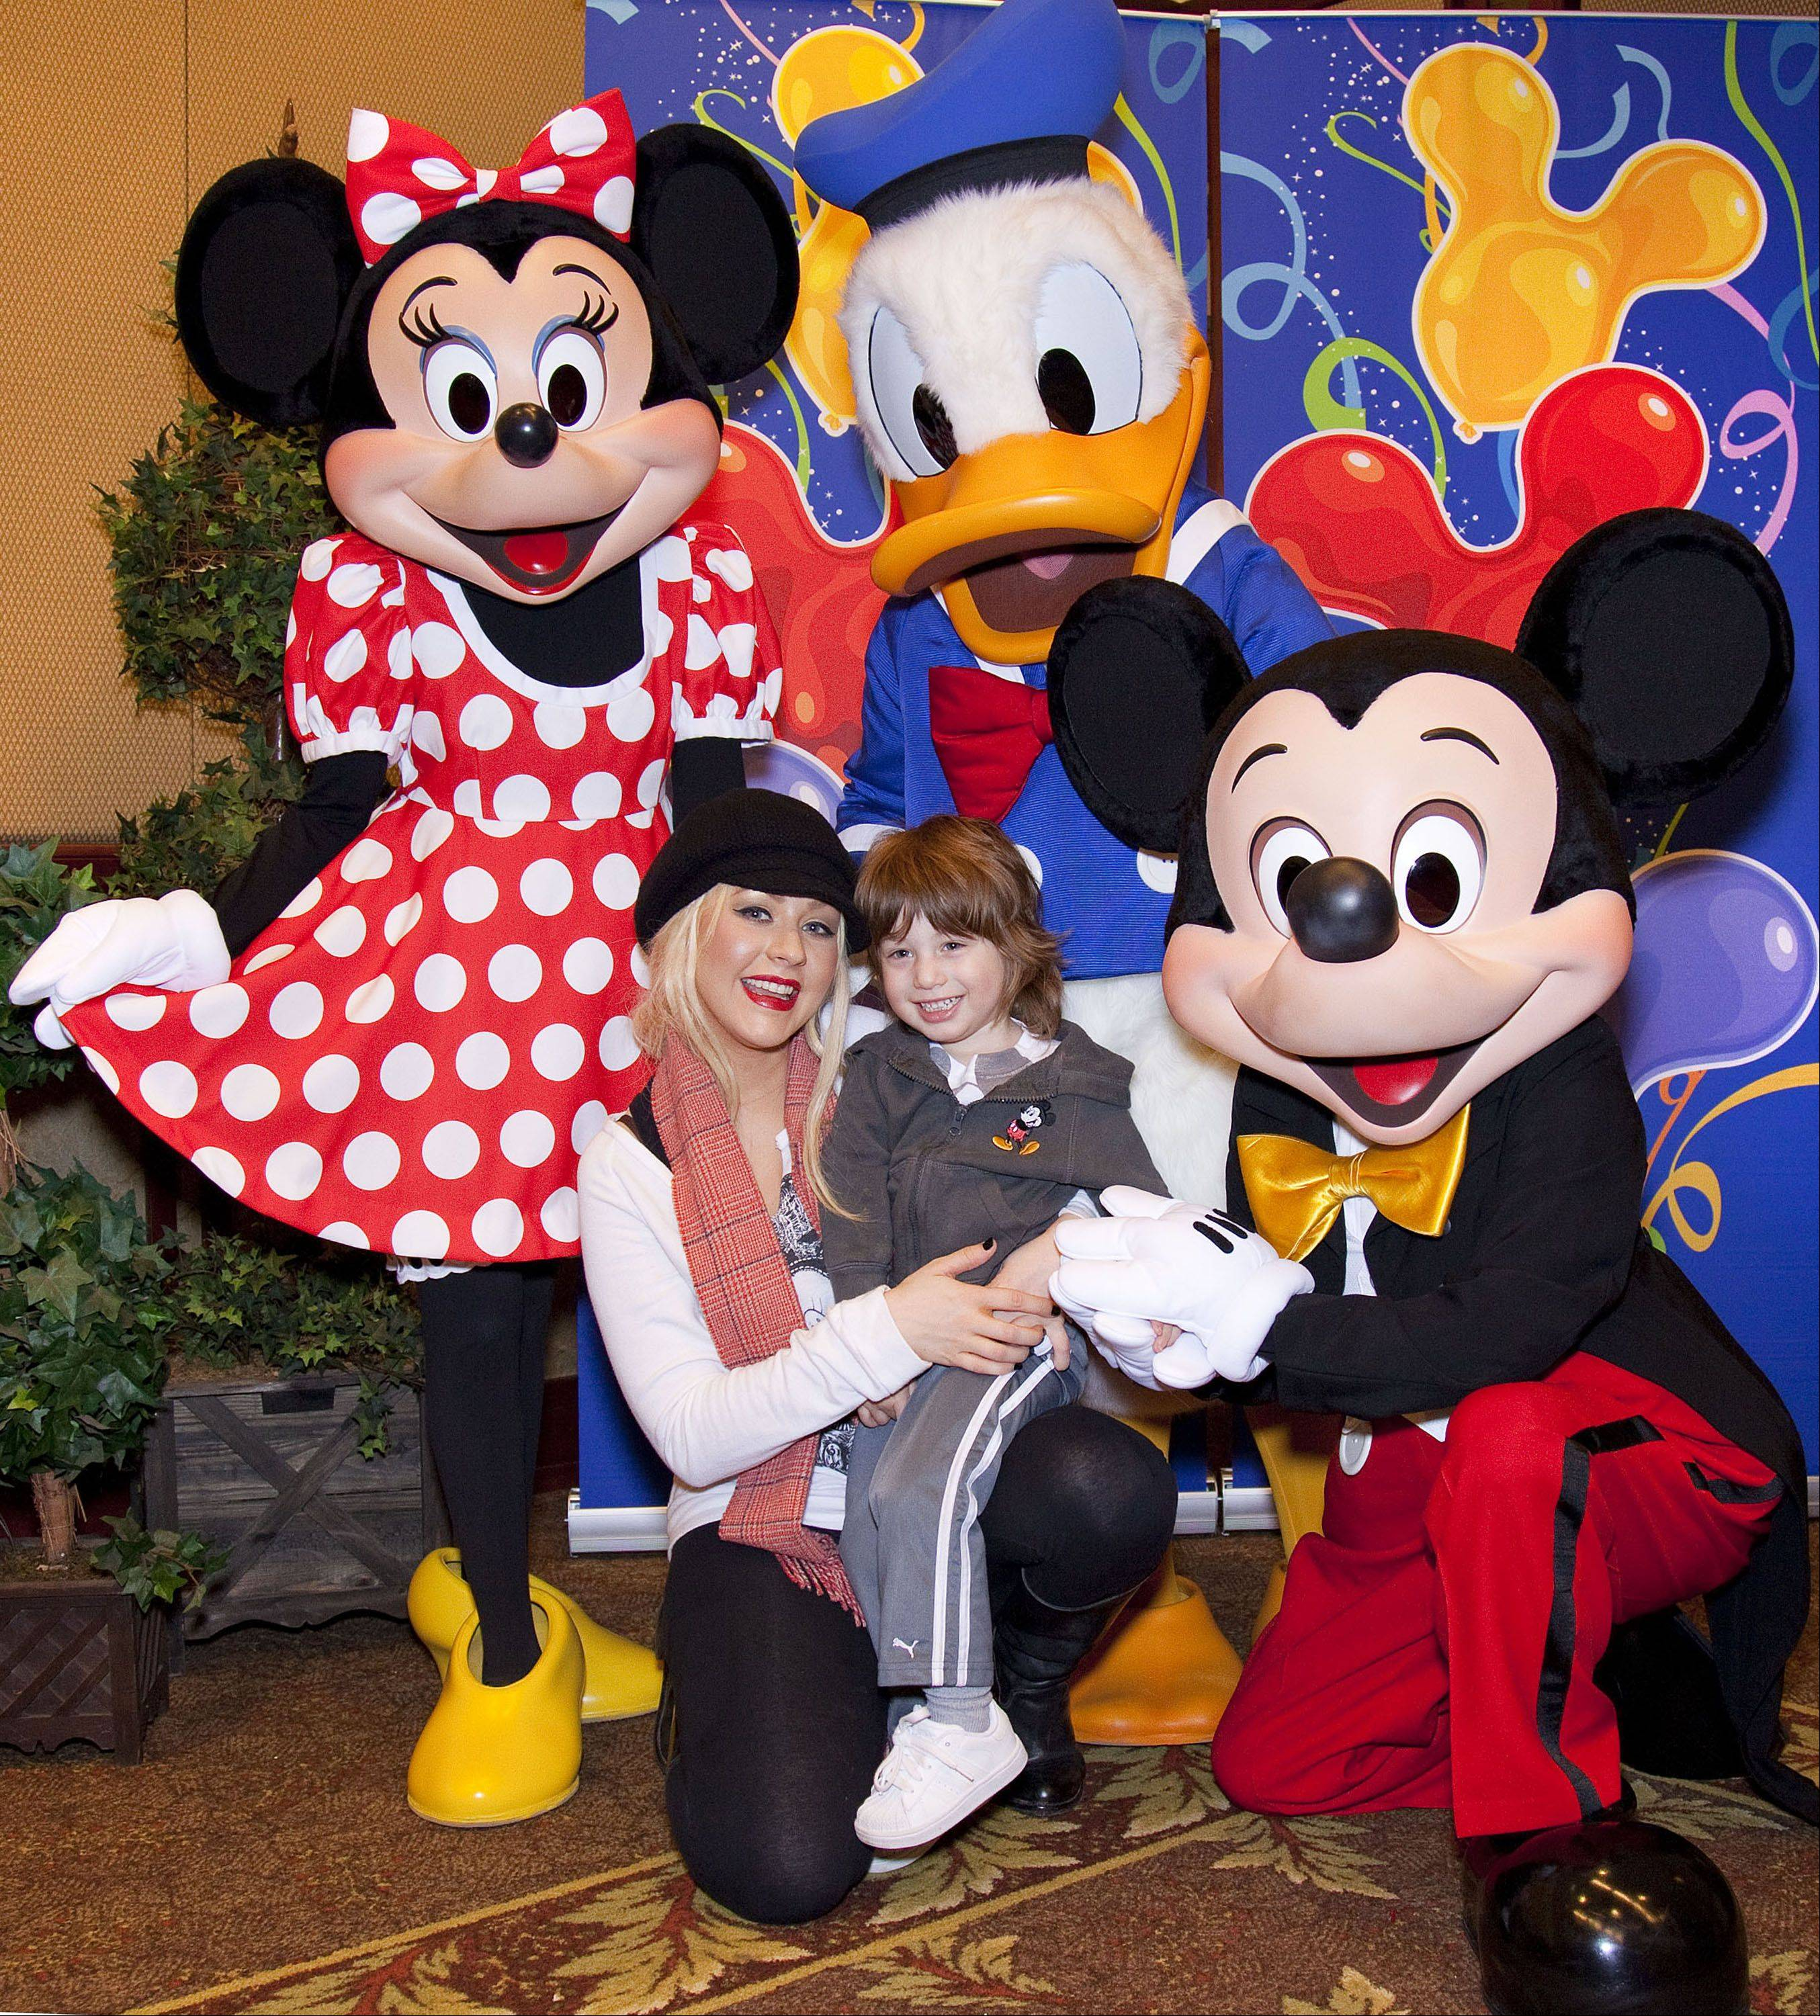 Mickey Mouse and Donald Duck wear their trademark bow ties for this 2011 photo with singer Christina Aguilera and her son Max. Minnie Mouse opts to wear her bow in her hair.